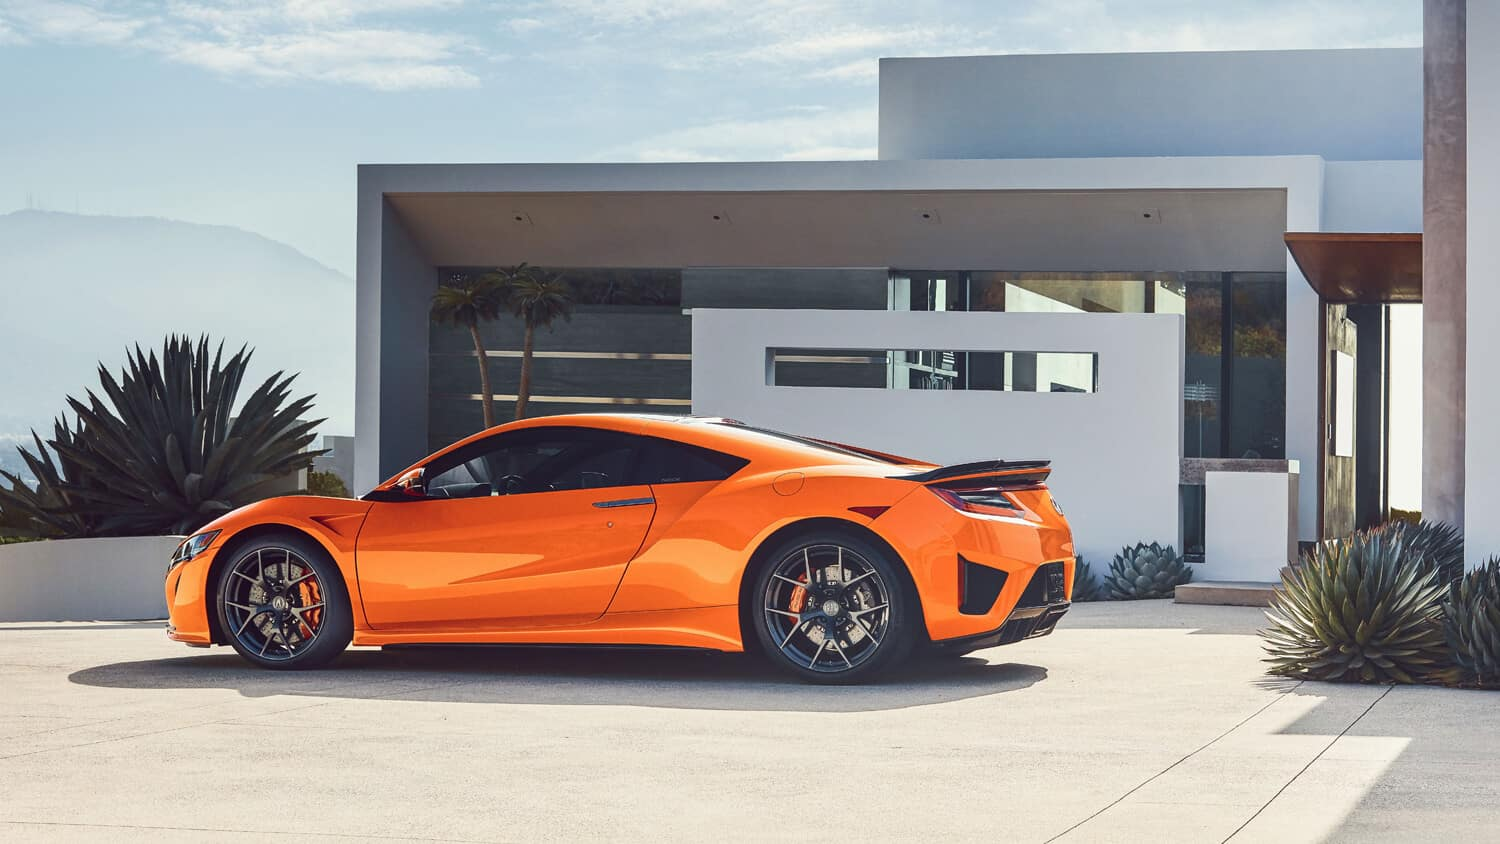 2019 Acura NSX Exterior Side Angle Driveway